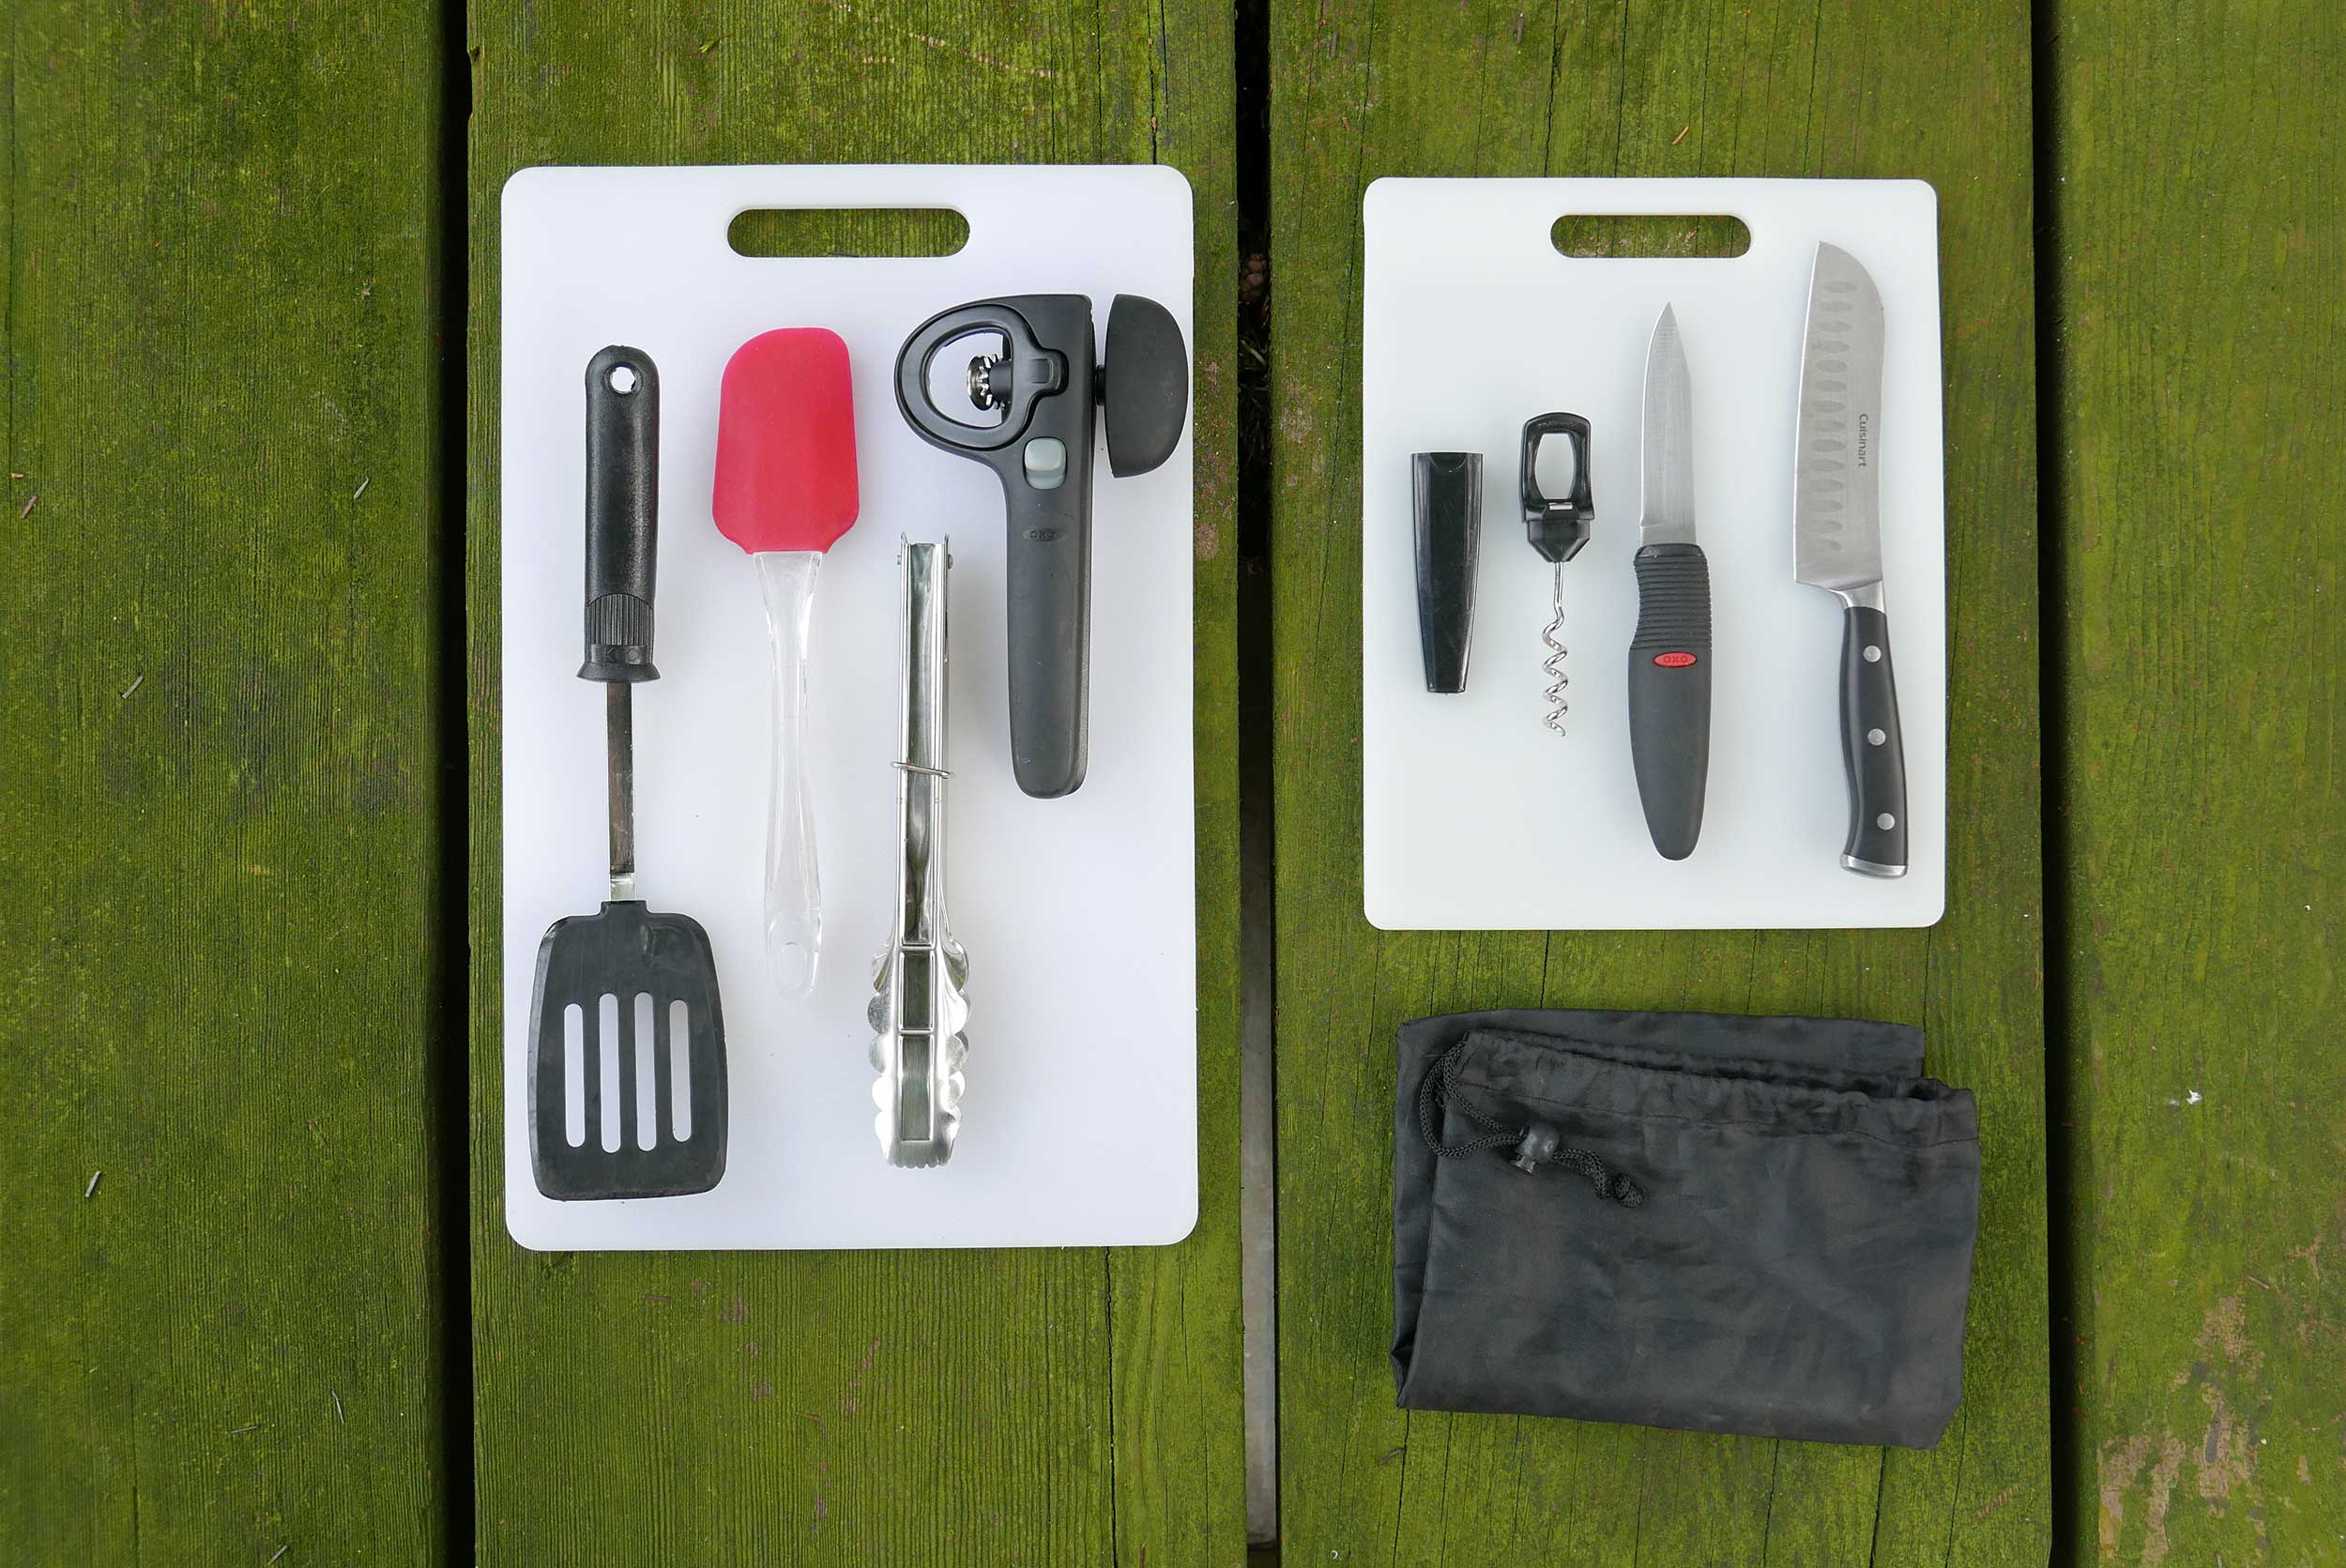 Cooking tools for car camping